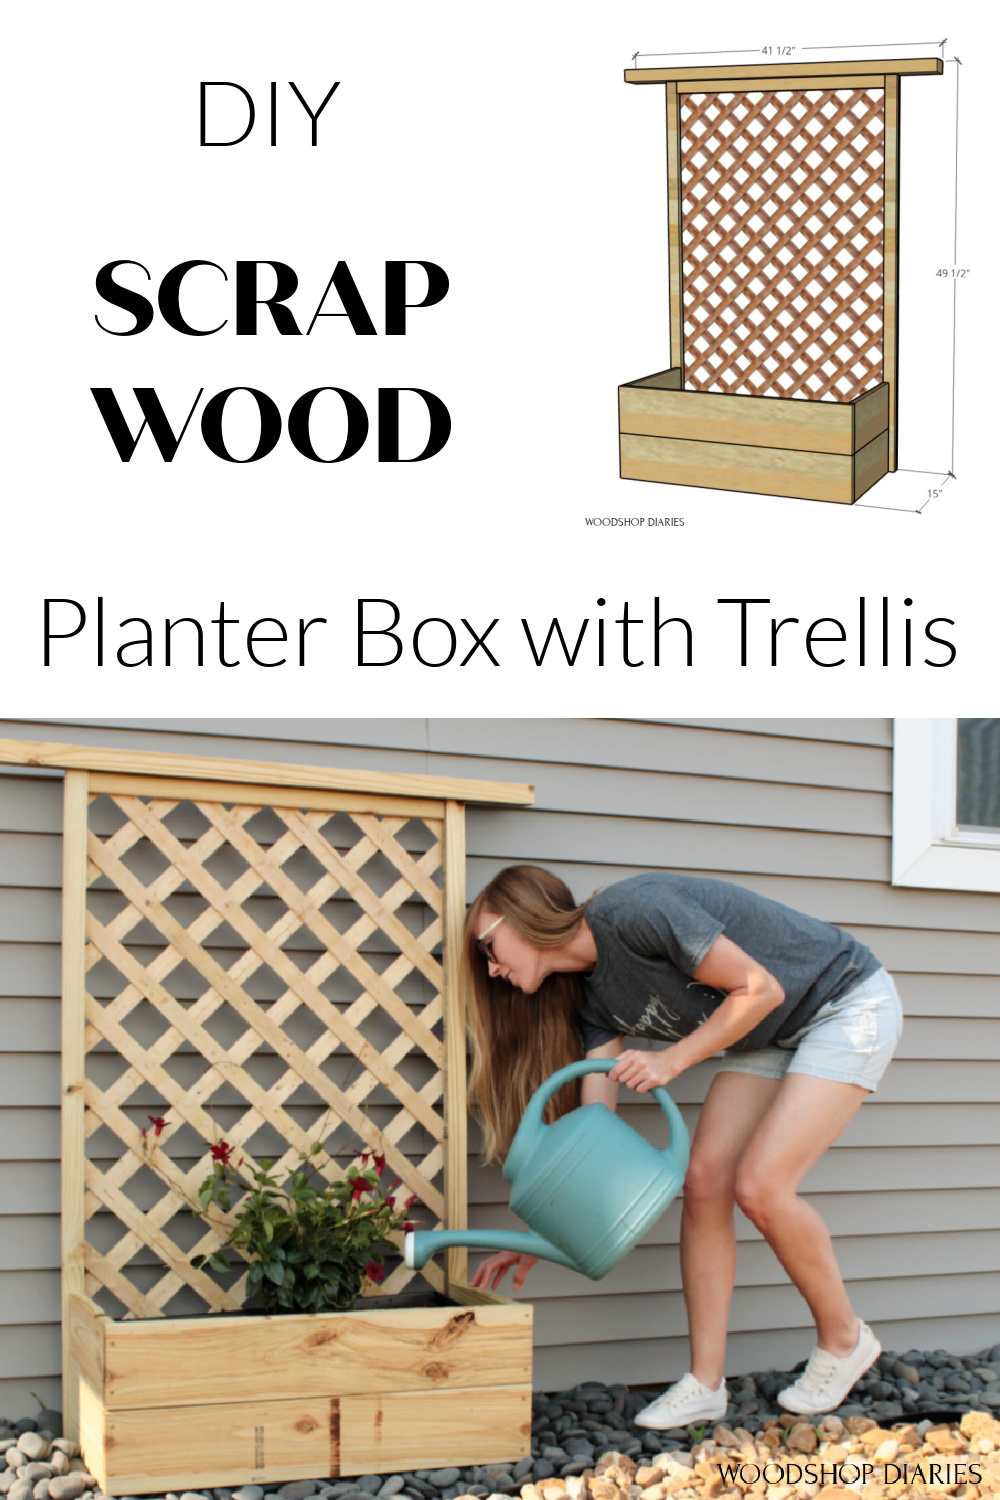 """Pinterest collage image showing overall planter box with trellis overall dimensions diagram at top and Shara watering plants inside at bottom with text """"DIY scrap wood planter box with trellis"""""""